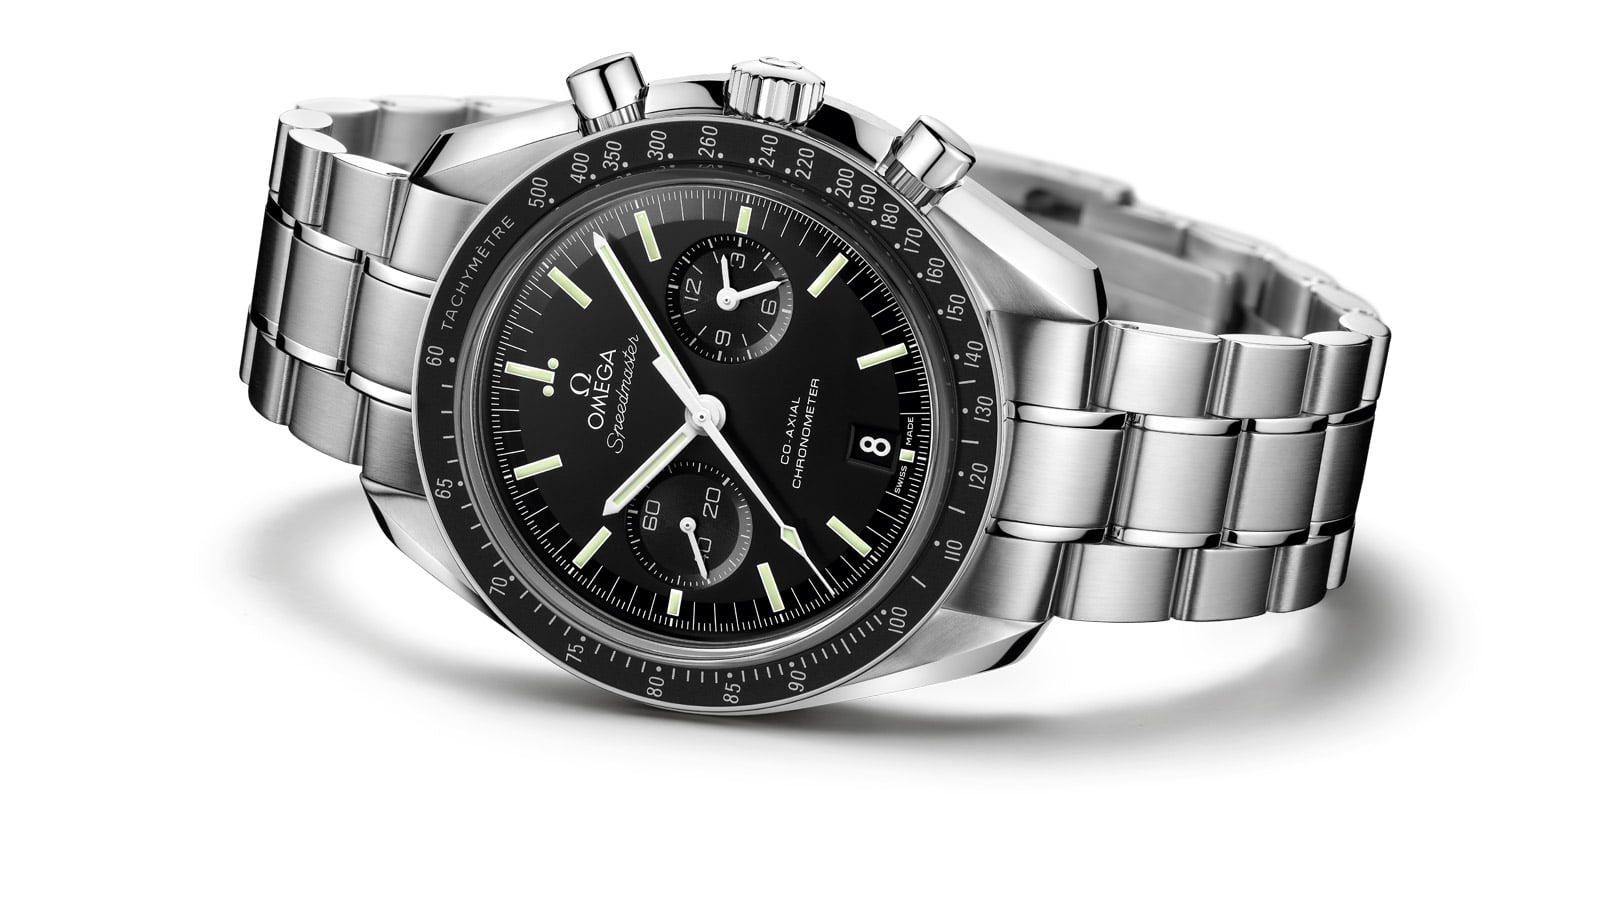 THE SPEEDMASTER MOONWATCH CHRONOGRAPH